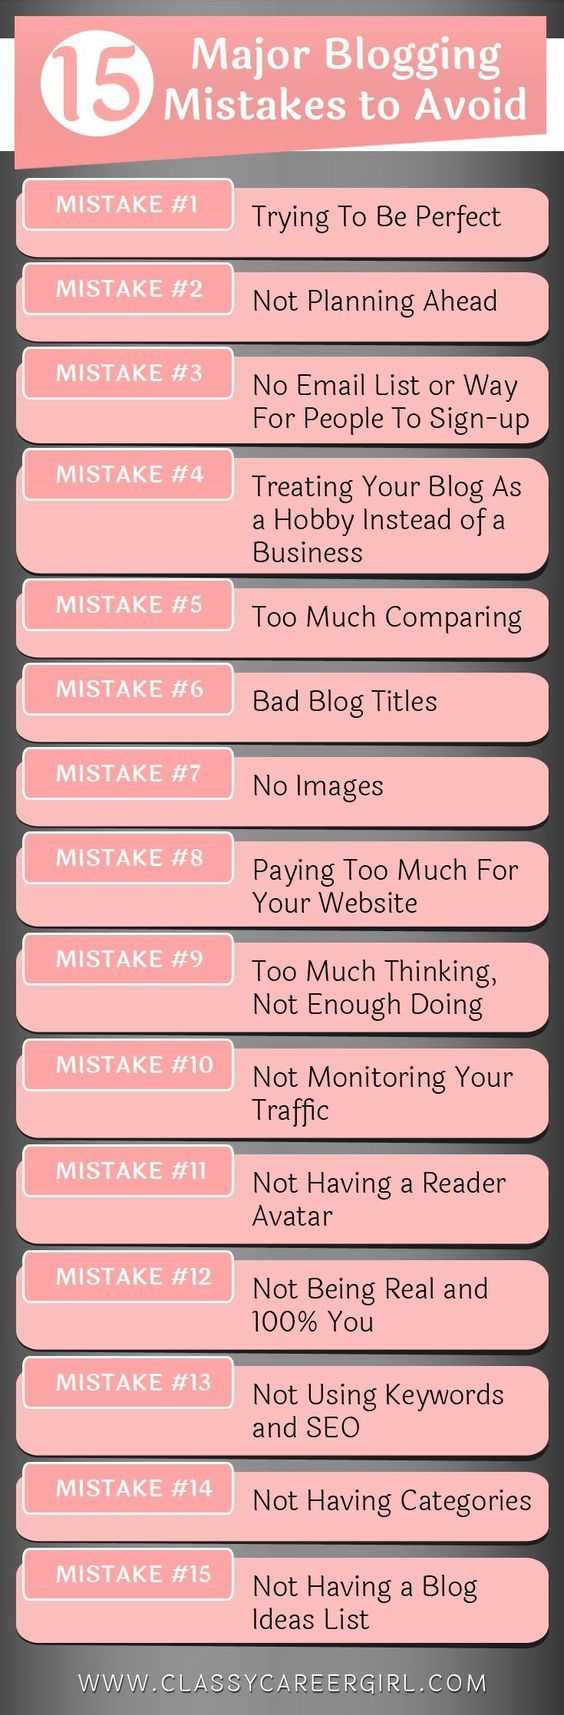 Starting a blog completely changed my life. Here are 5 major blogging mistakes to avoid. http://www.classycareergirl.com/2016/06/complete-beginners-guide-successful-blog/